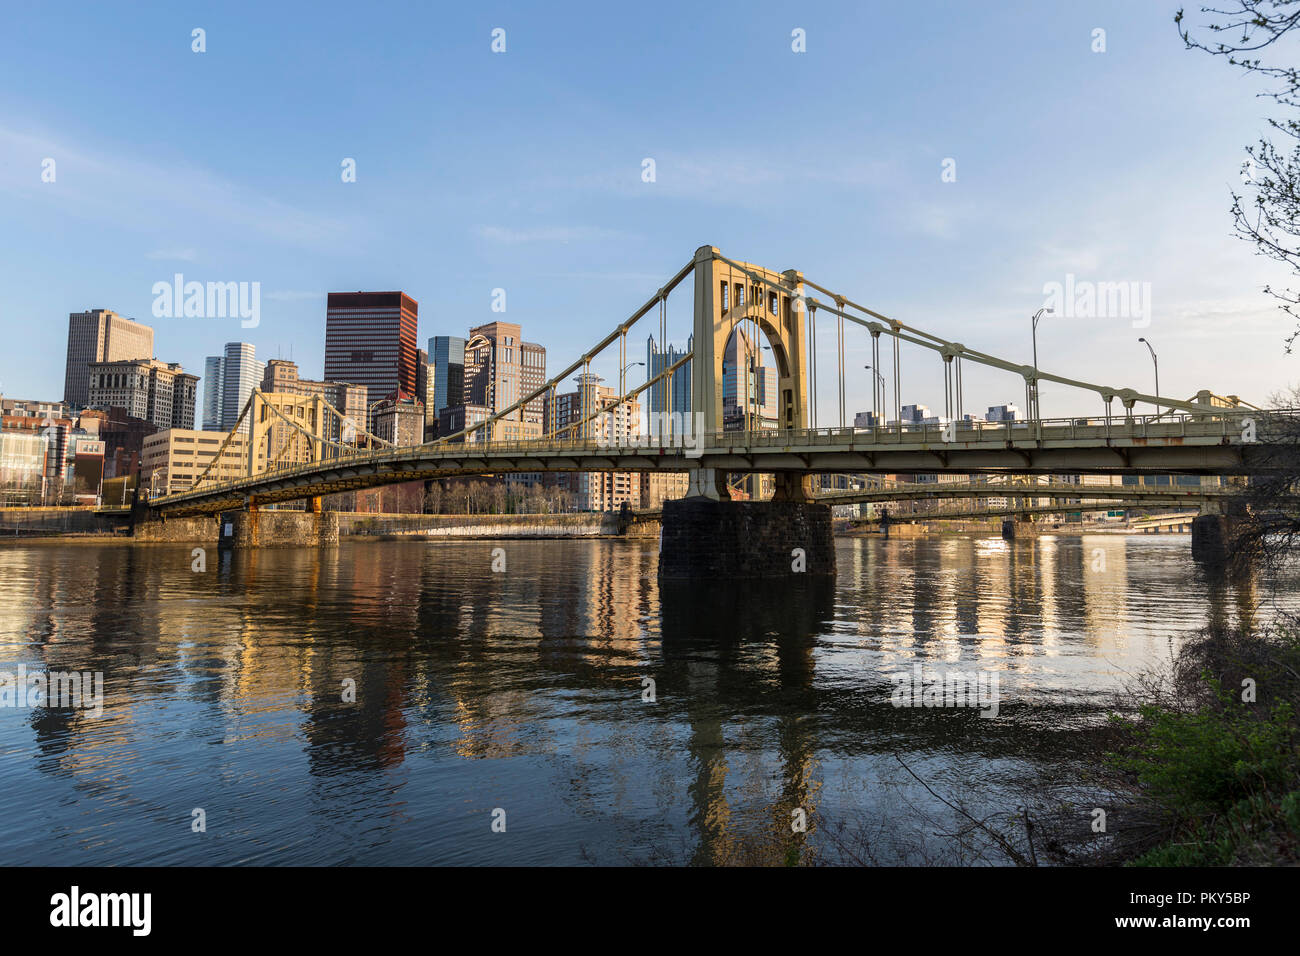 Urban waterfront and bridges crossing the Allegheny River in downtown Pittsburgh, Pennsylvania. Stock Photo